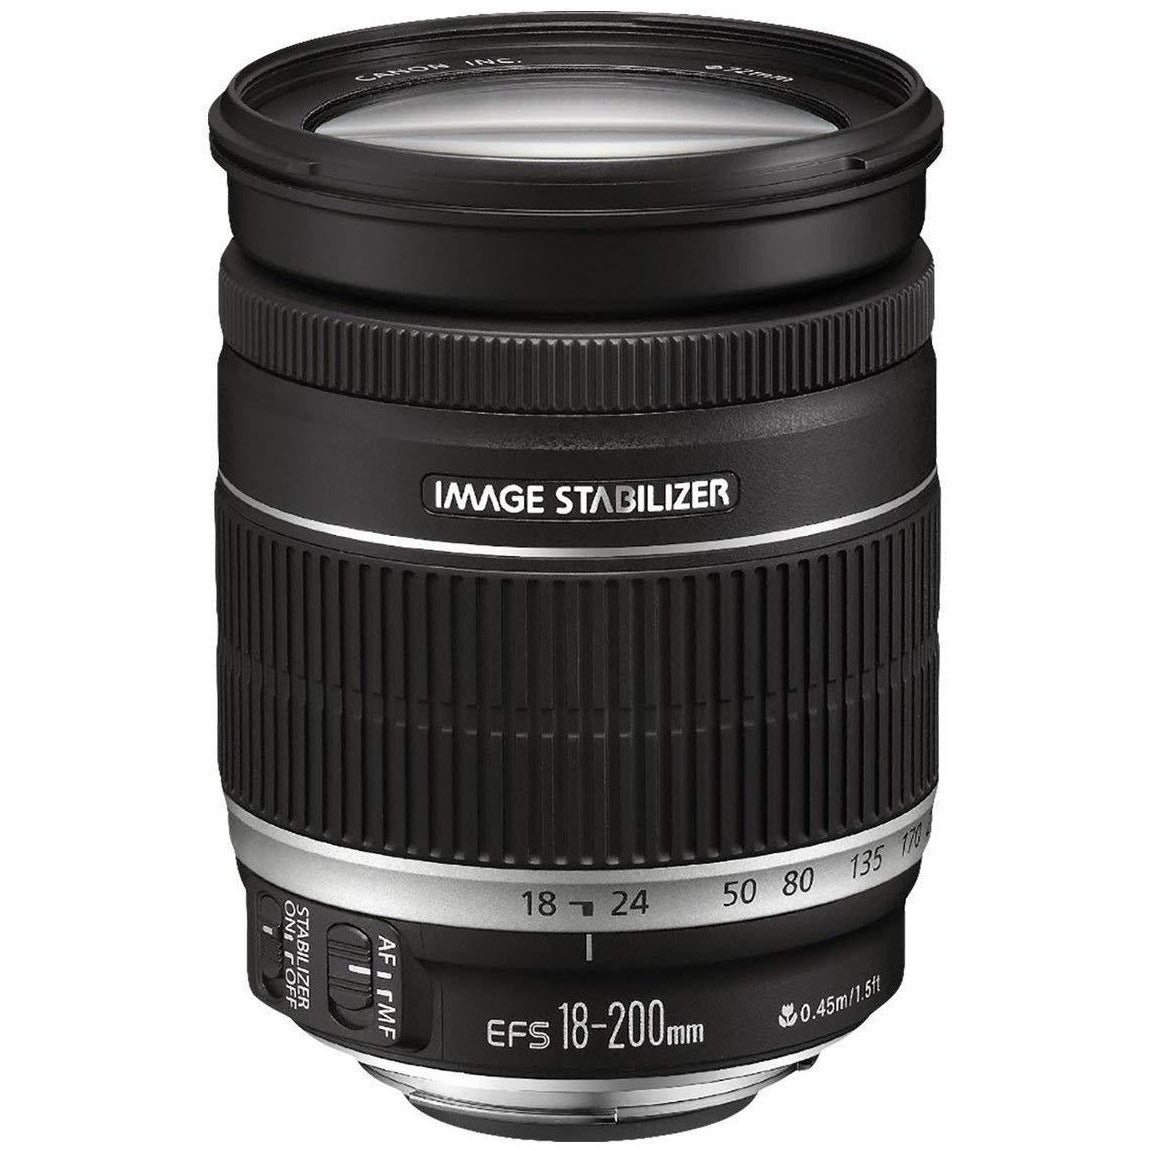 Canon EF-S 18-200mm f/3.5-5.6 IS Standard Zoom Lens for Canon DSLR Cameras - Grey Market non US Lens